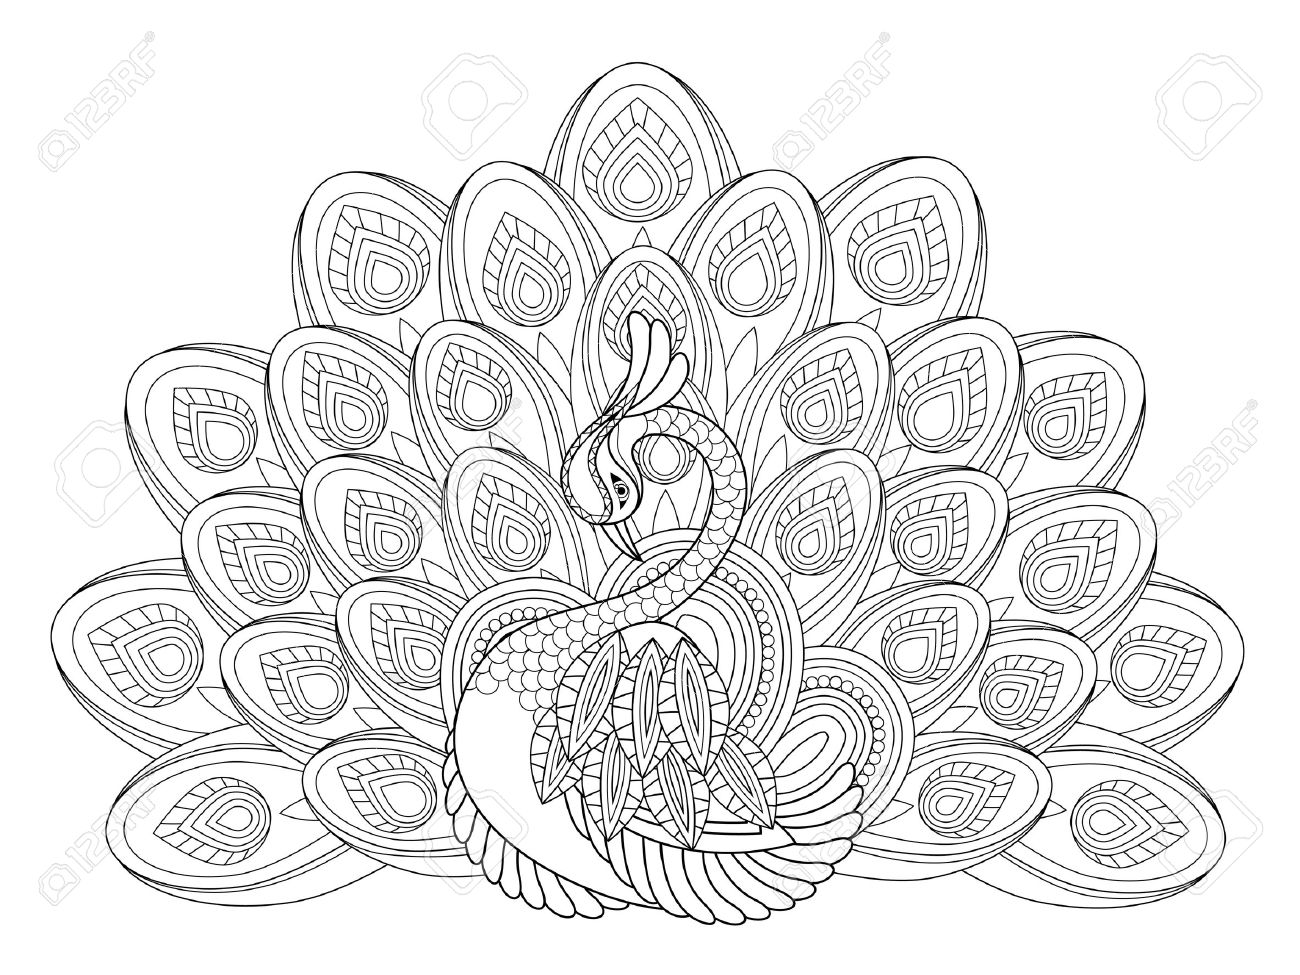 Coloring Pages Coloring Page Peacock peacock coloring pages to print futpal com page eassume